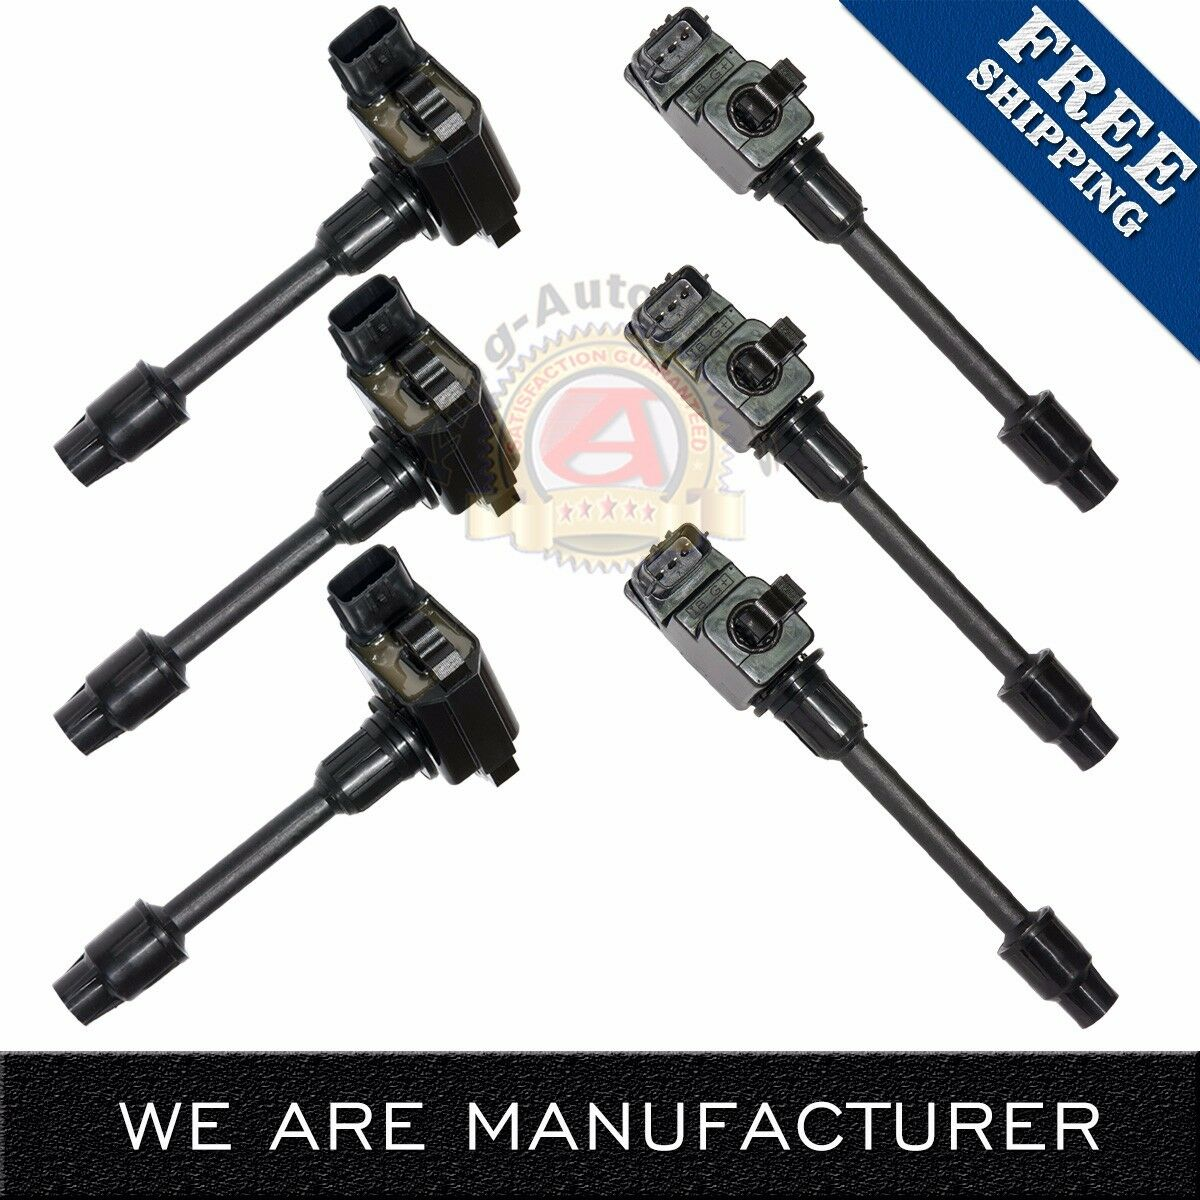 2001 Nissan Maxima Ignition Switch: Set Of 6 New Ignition Coils For 1995-1999 NISSAN 3.0L V6